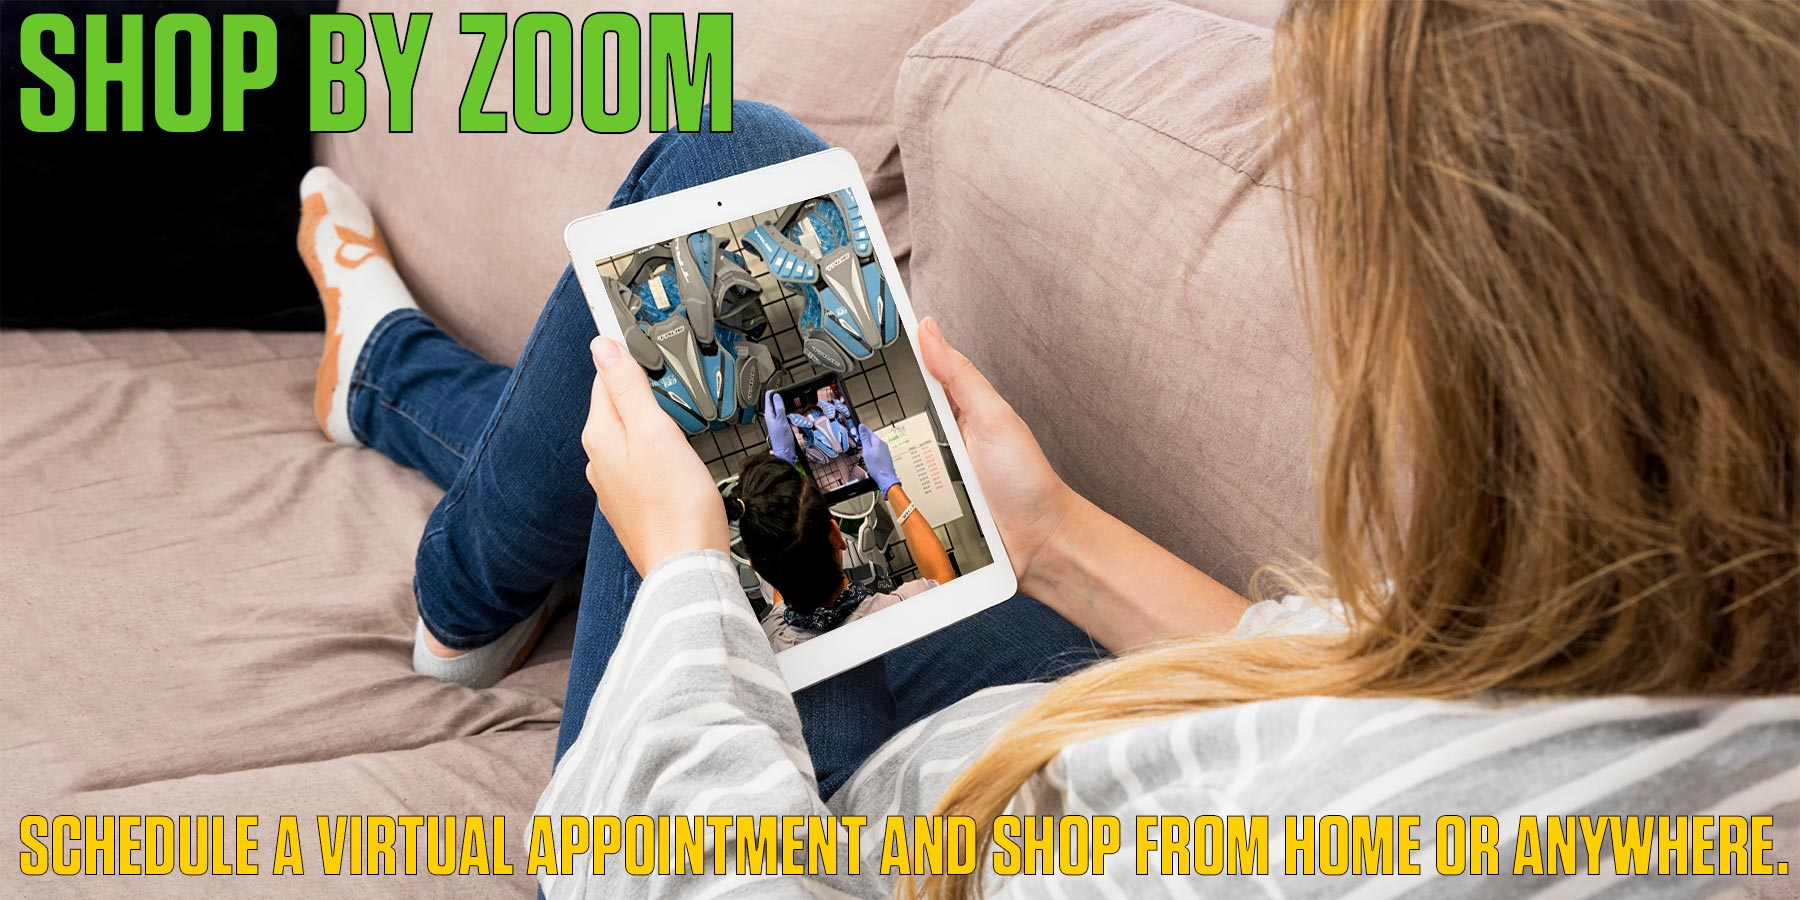 Shop by Zoom with our FREE Virtual Shopping Appointments